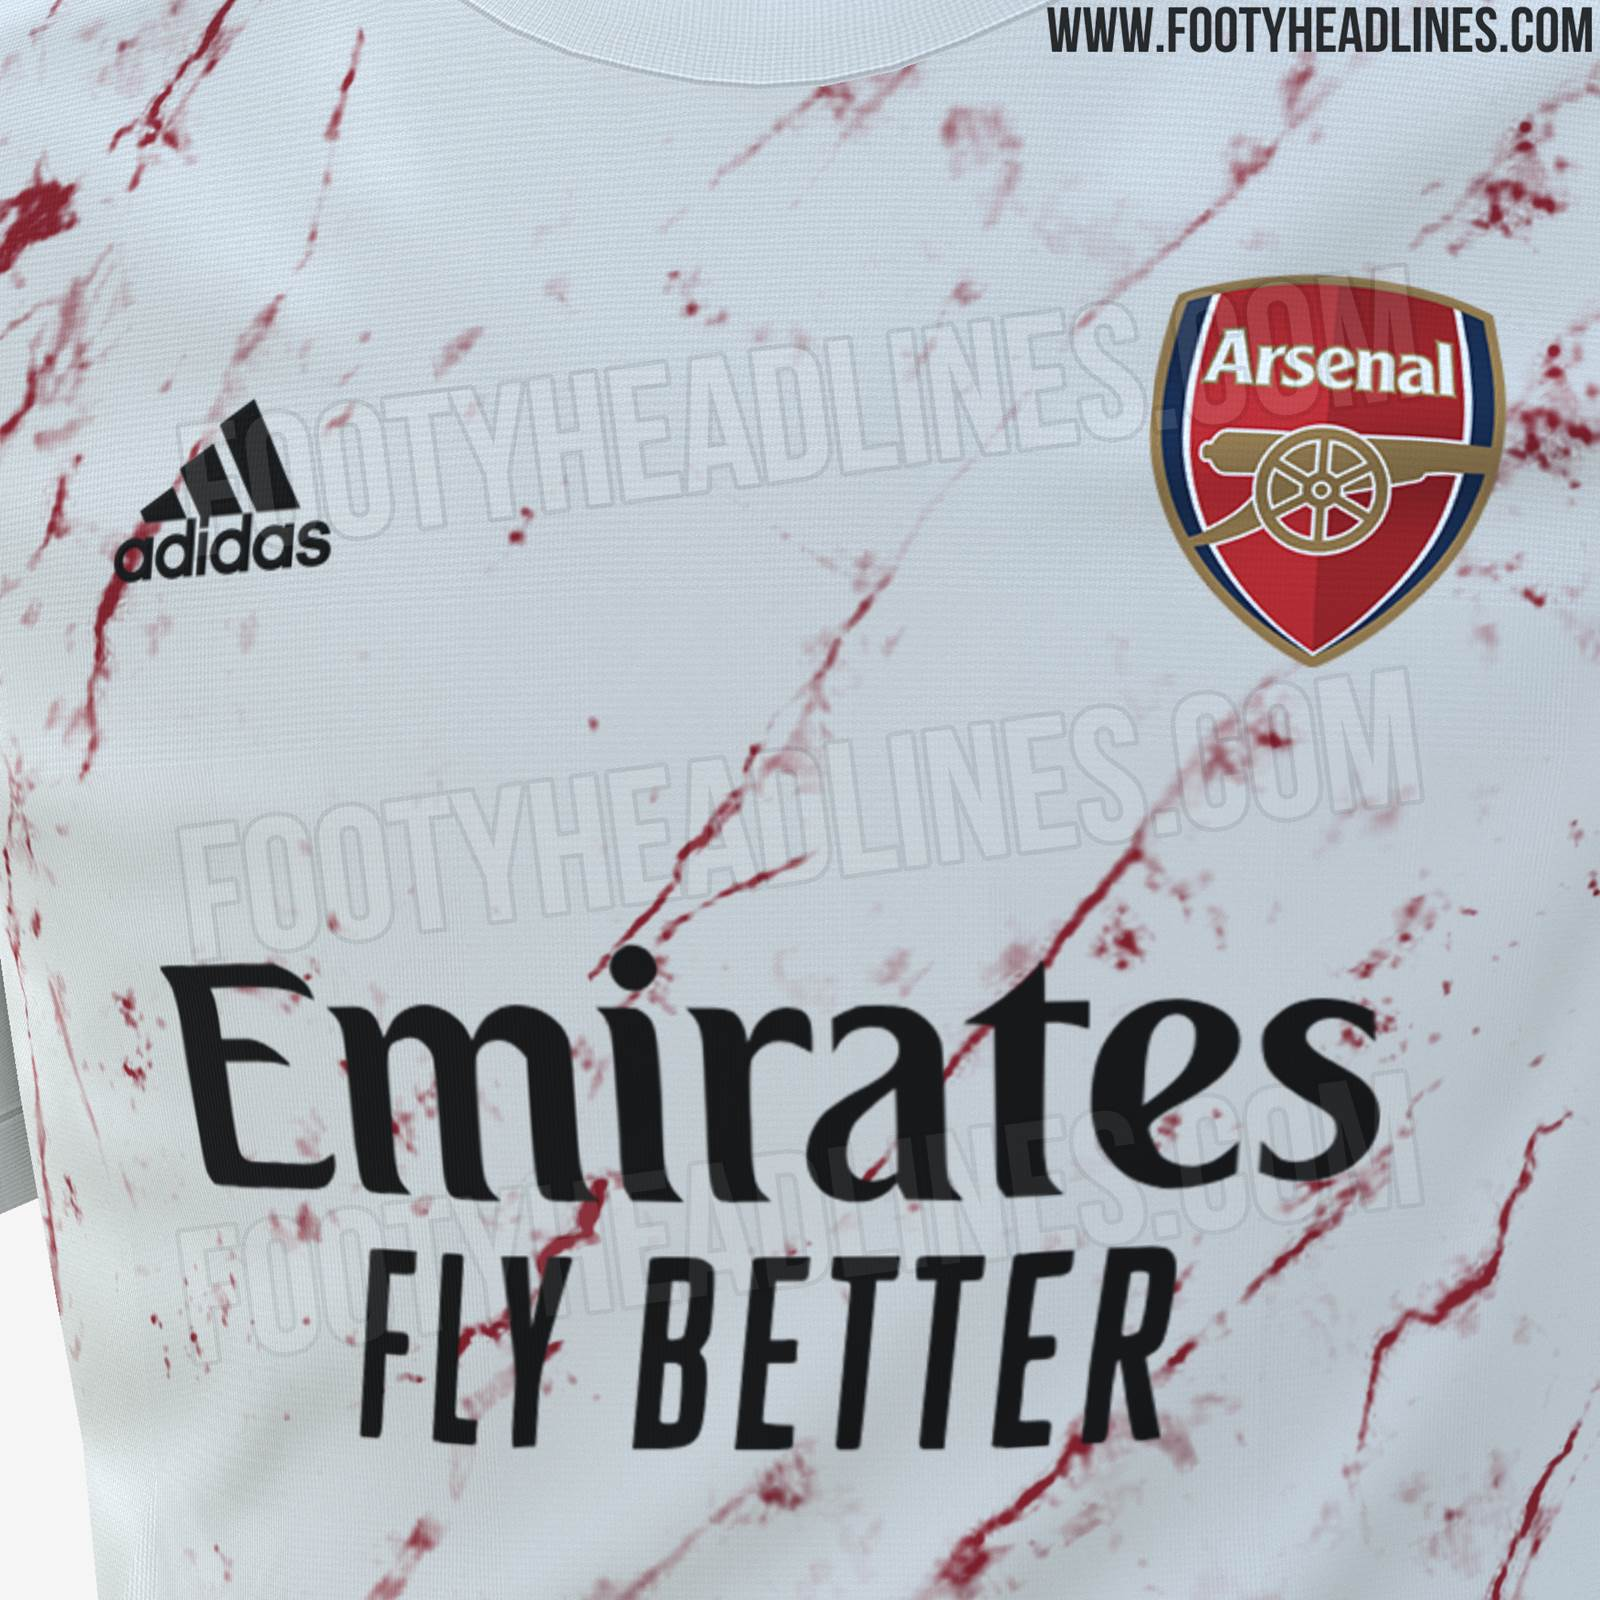 Arsenal S New Away Kit For Next Season Has Been Leaked And Fans Are Saying The Exact Same Thing Sportbible